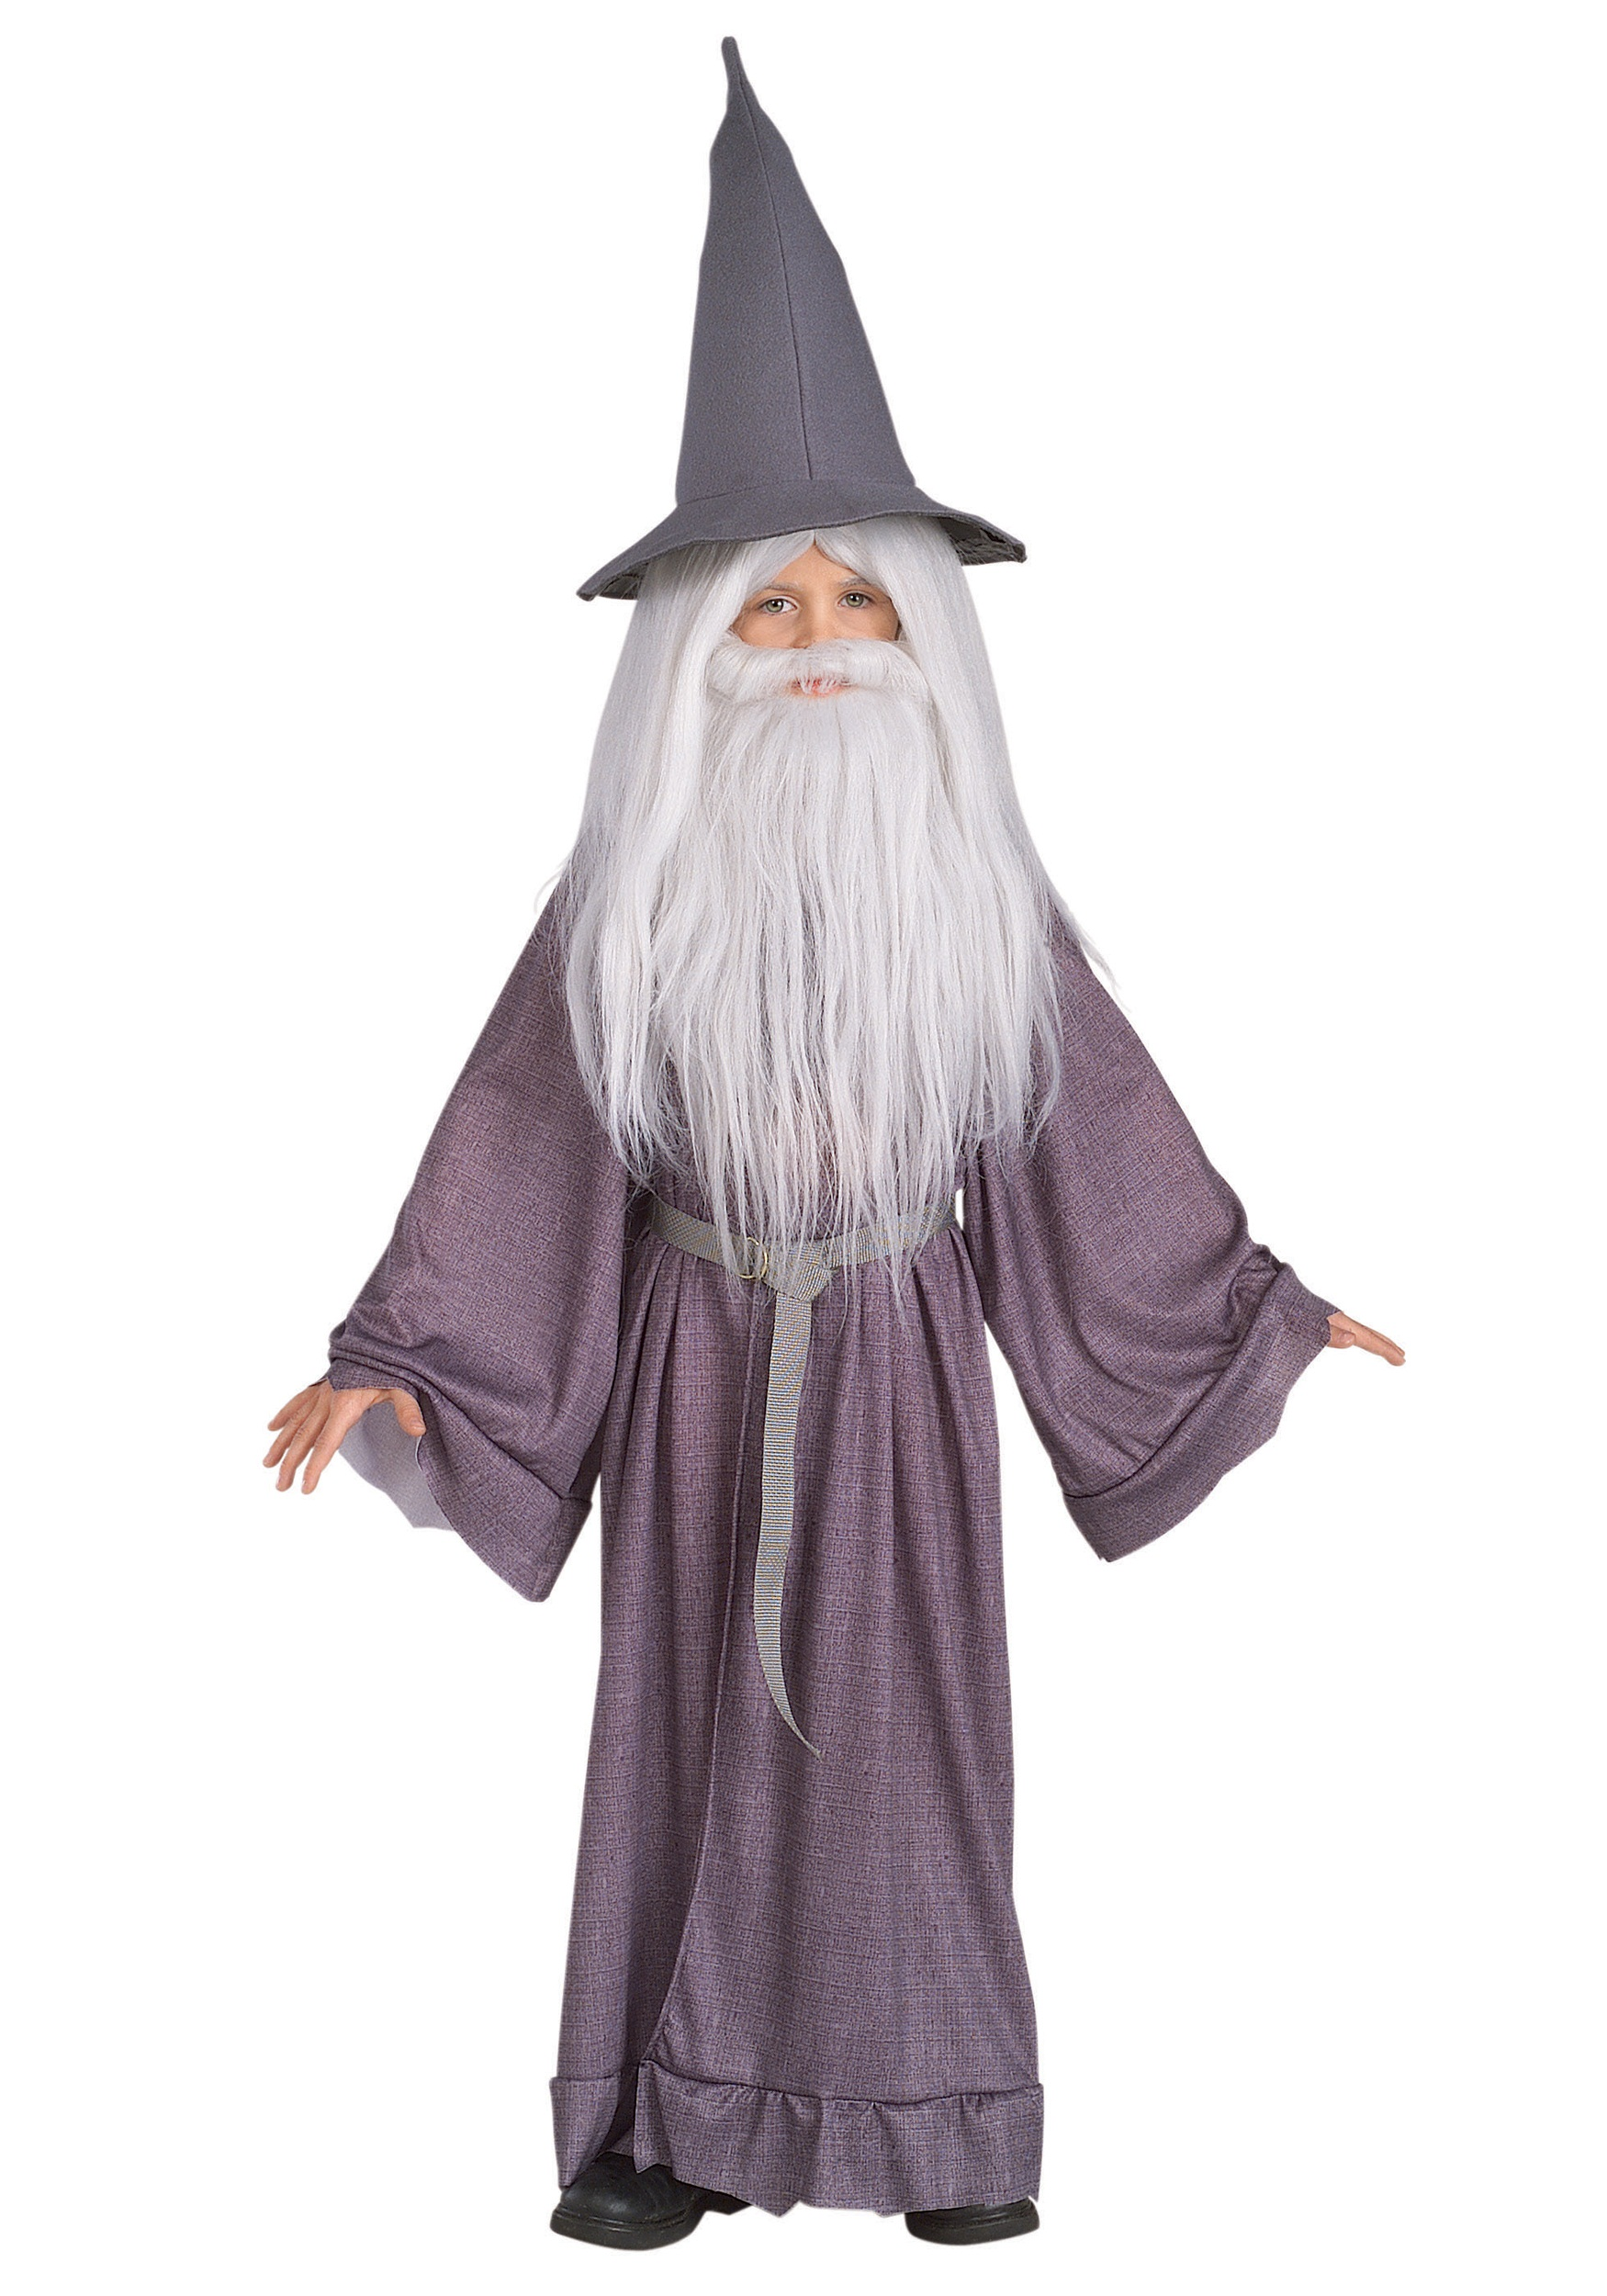 Gandalfs hobbit costume and cosplay guide the hobbit kids gandalf costume includes robe belt and wizard hat solutioingenieria Images